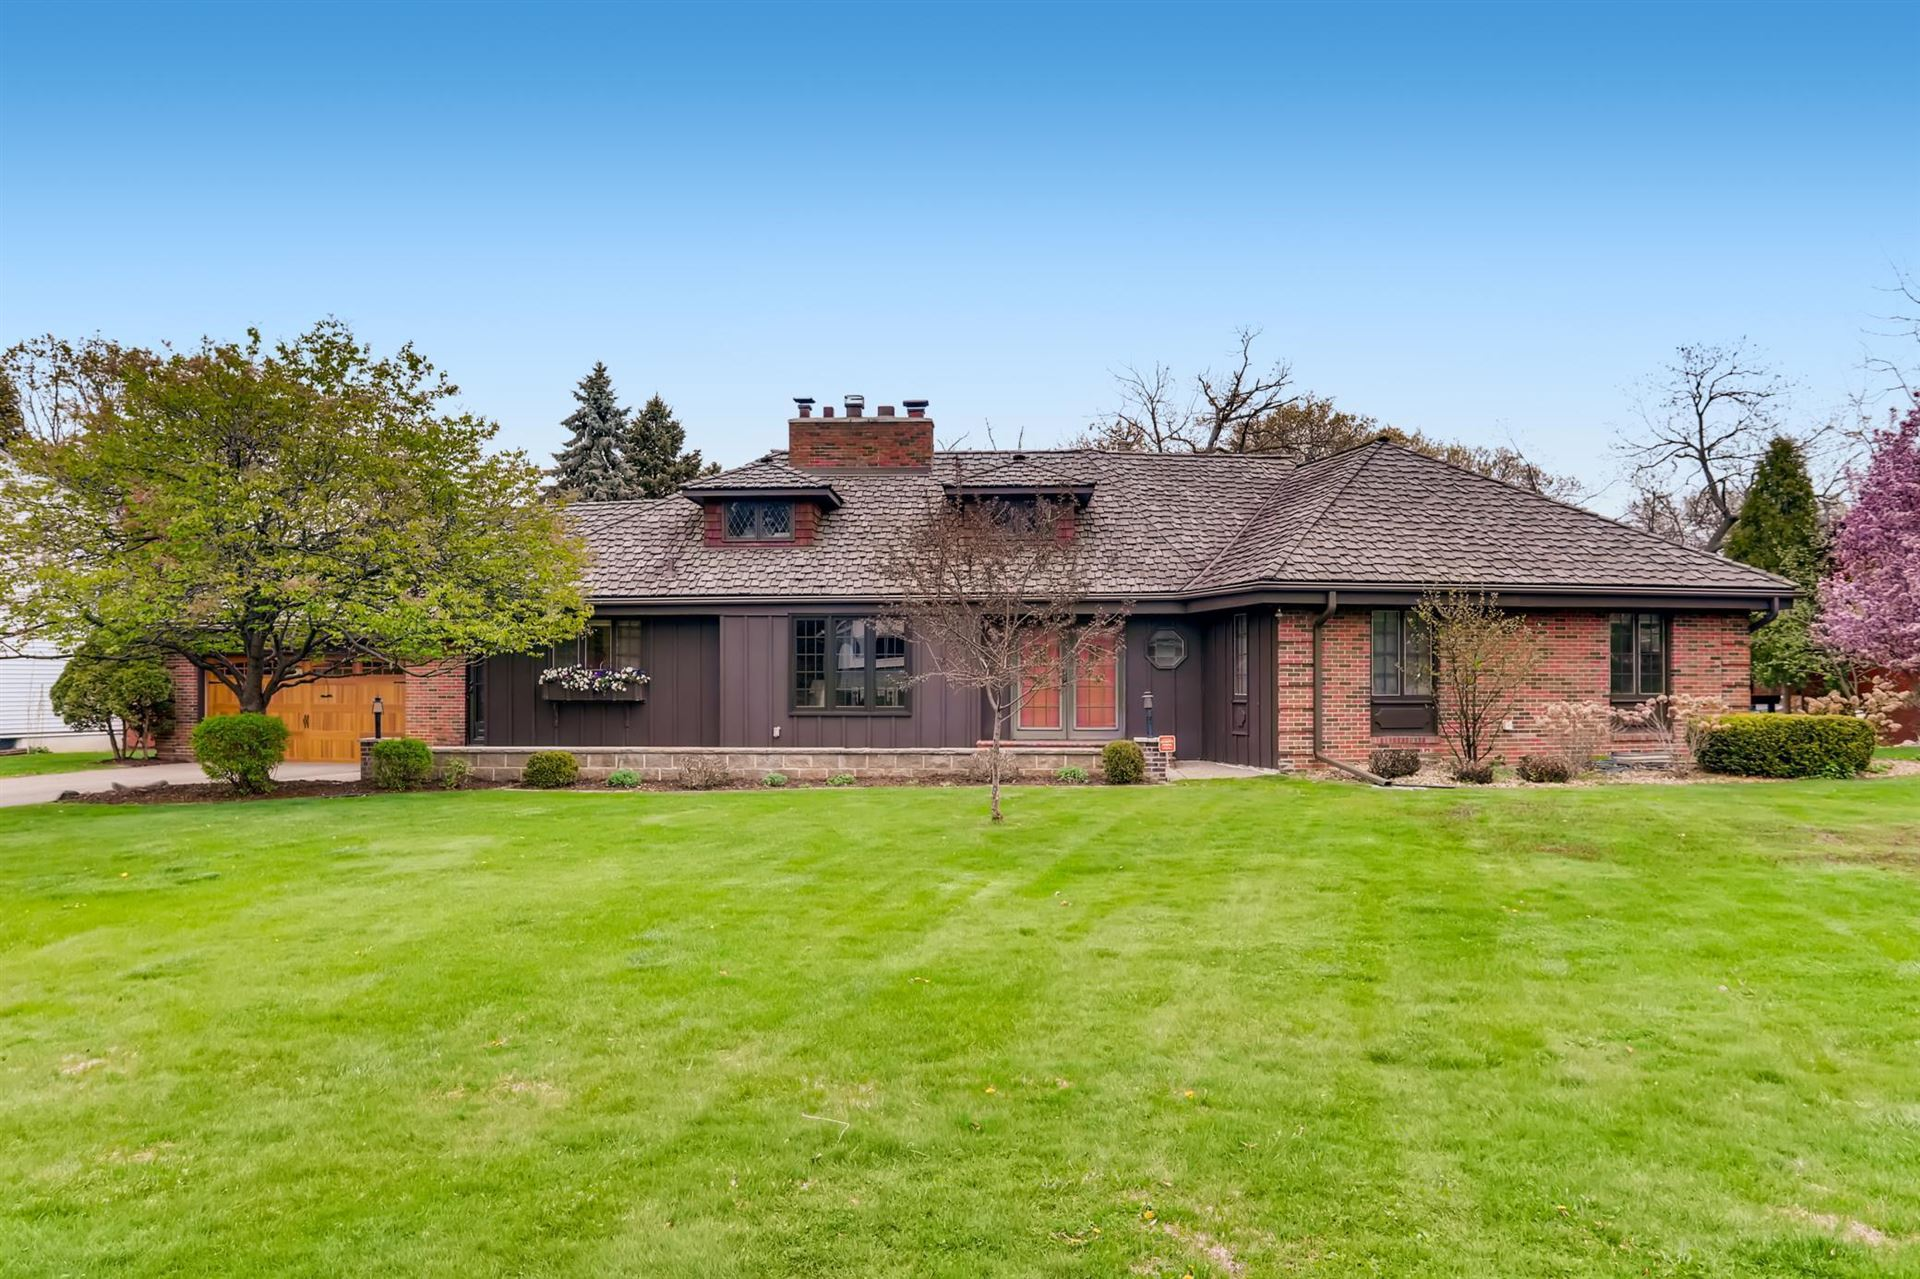 2844 Forest Dale Road, New Brighton, MN 55112 - MLS#: 5745774